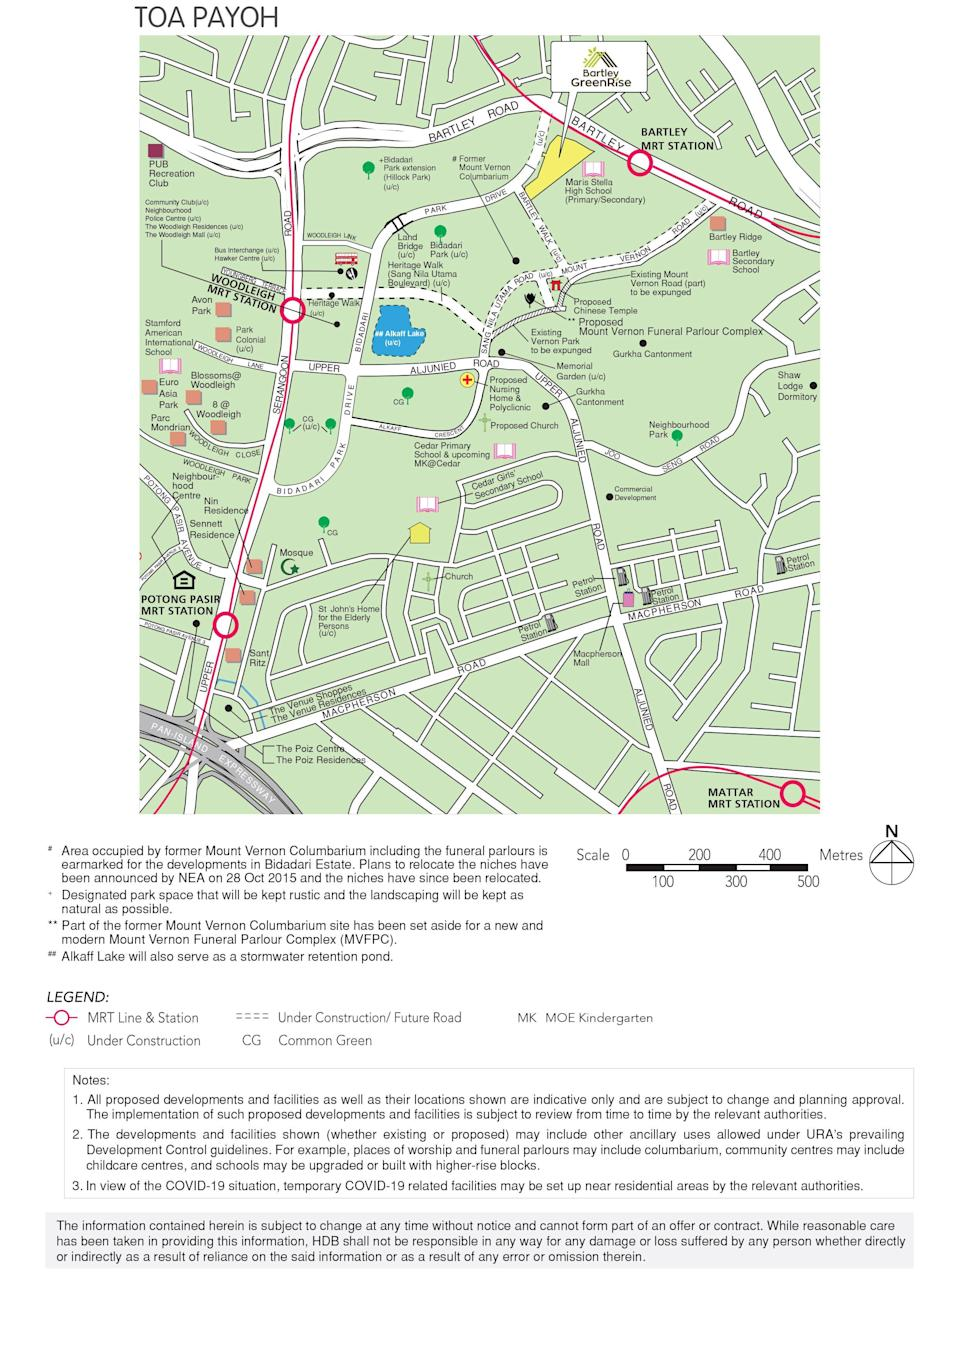 Bartley GreenRise BTO map